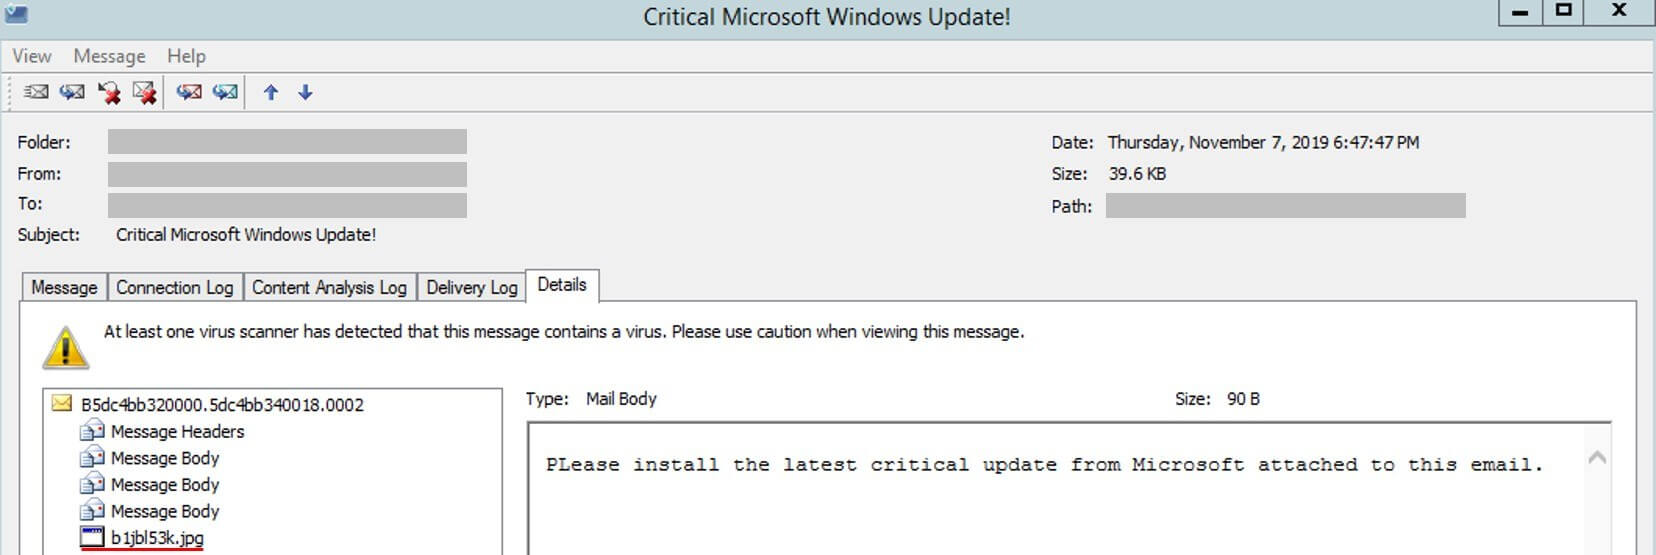 Beware of emails claiming to be from Microsoft 2019-11-20-image-6